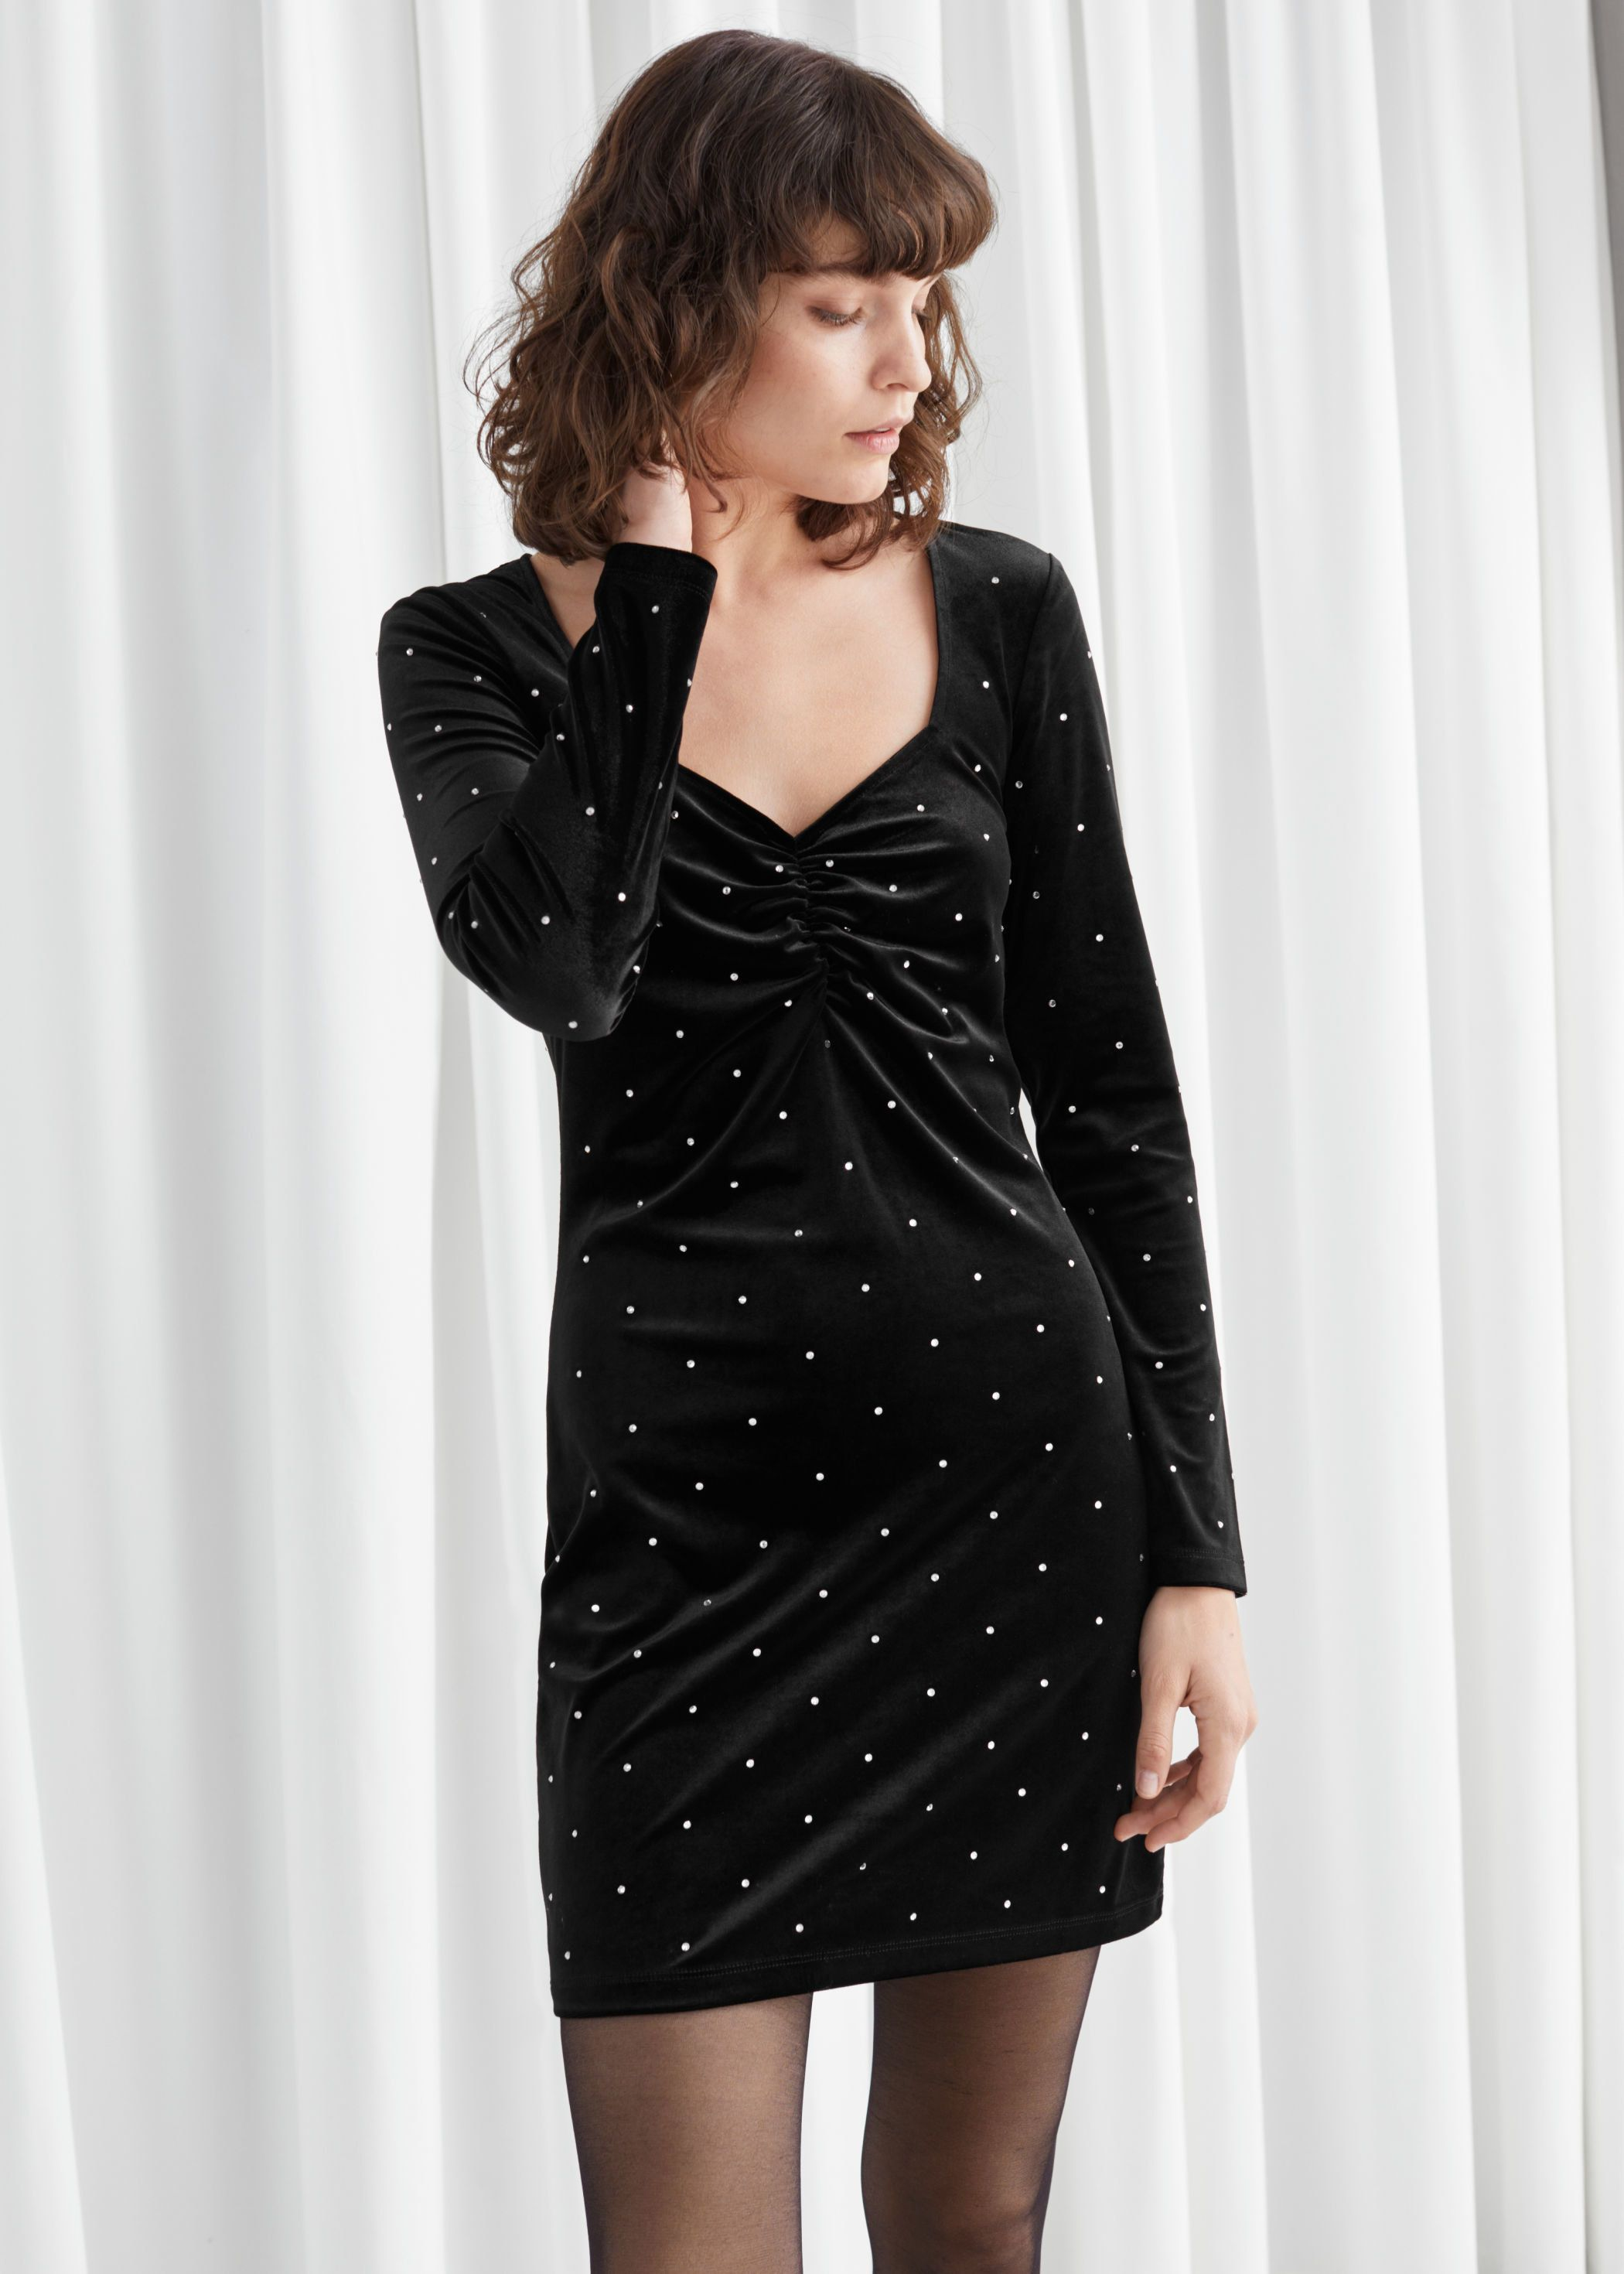 27 New Year's Eve Dresses That Aren't Sparkly Nightmares